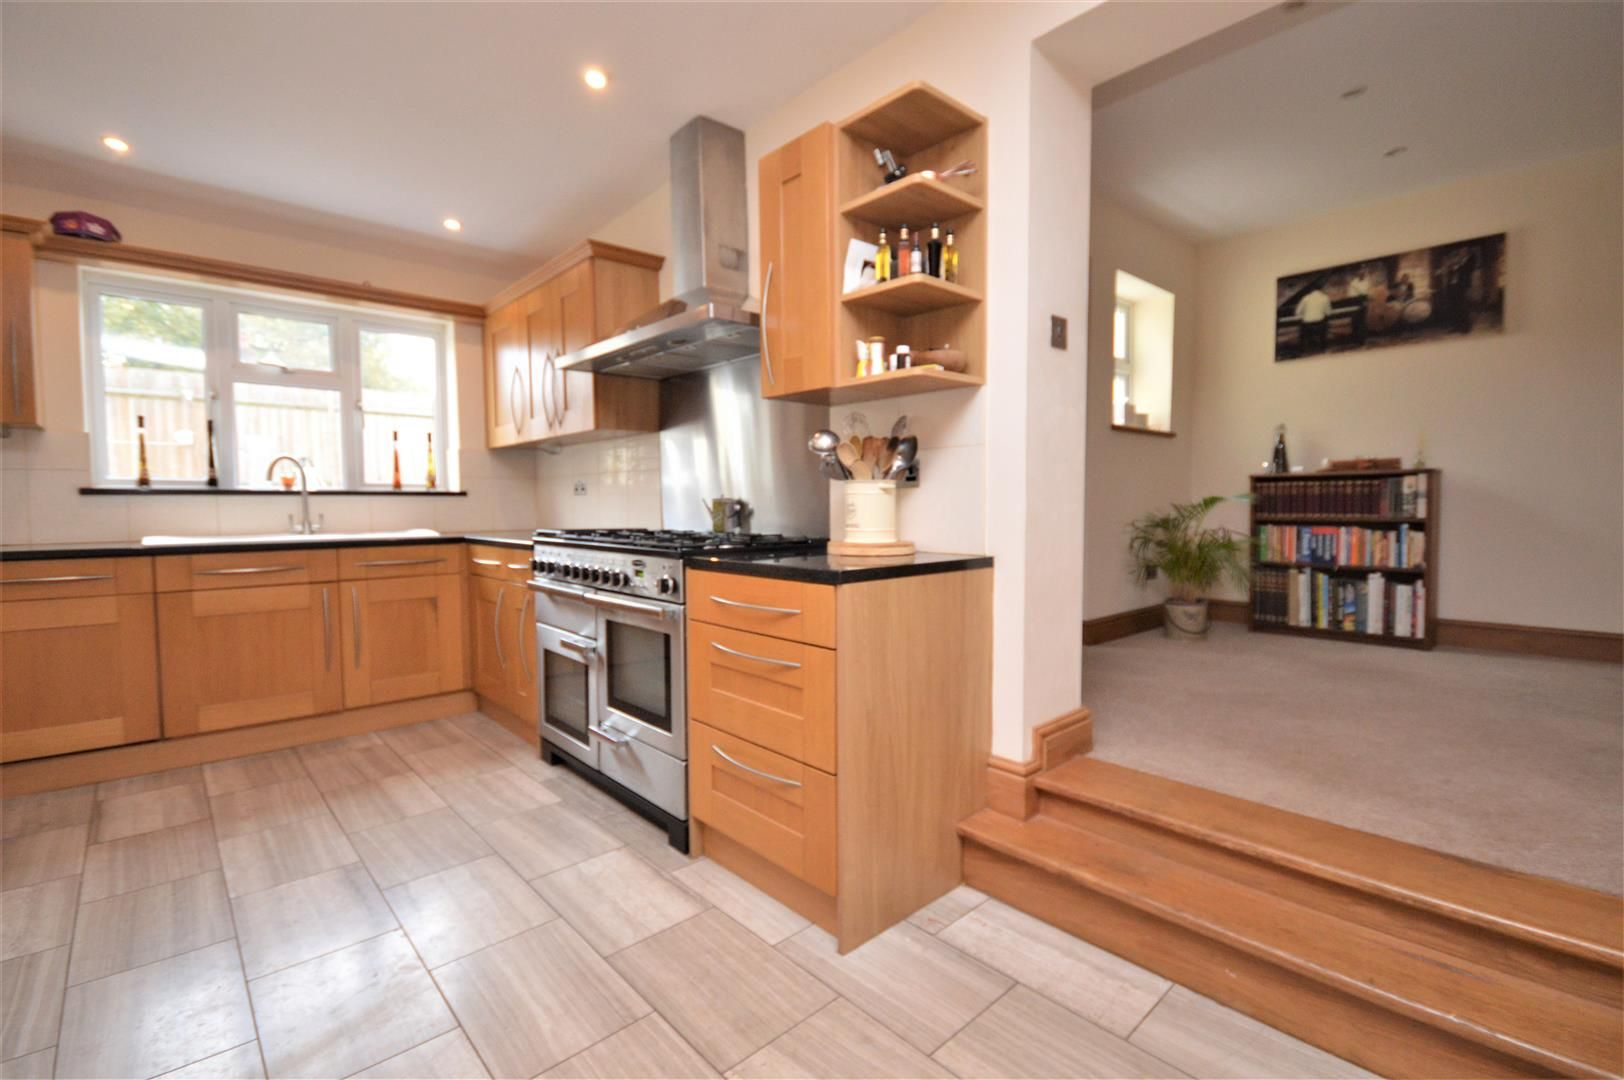 4 bed detached for sale in Kings Acre  - Property Image 6